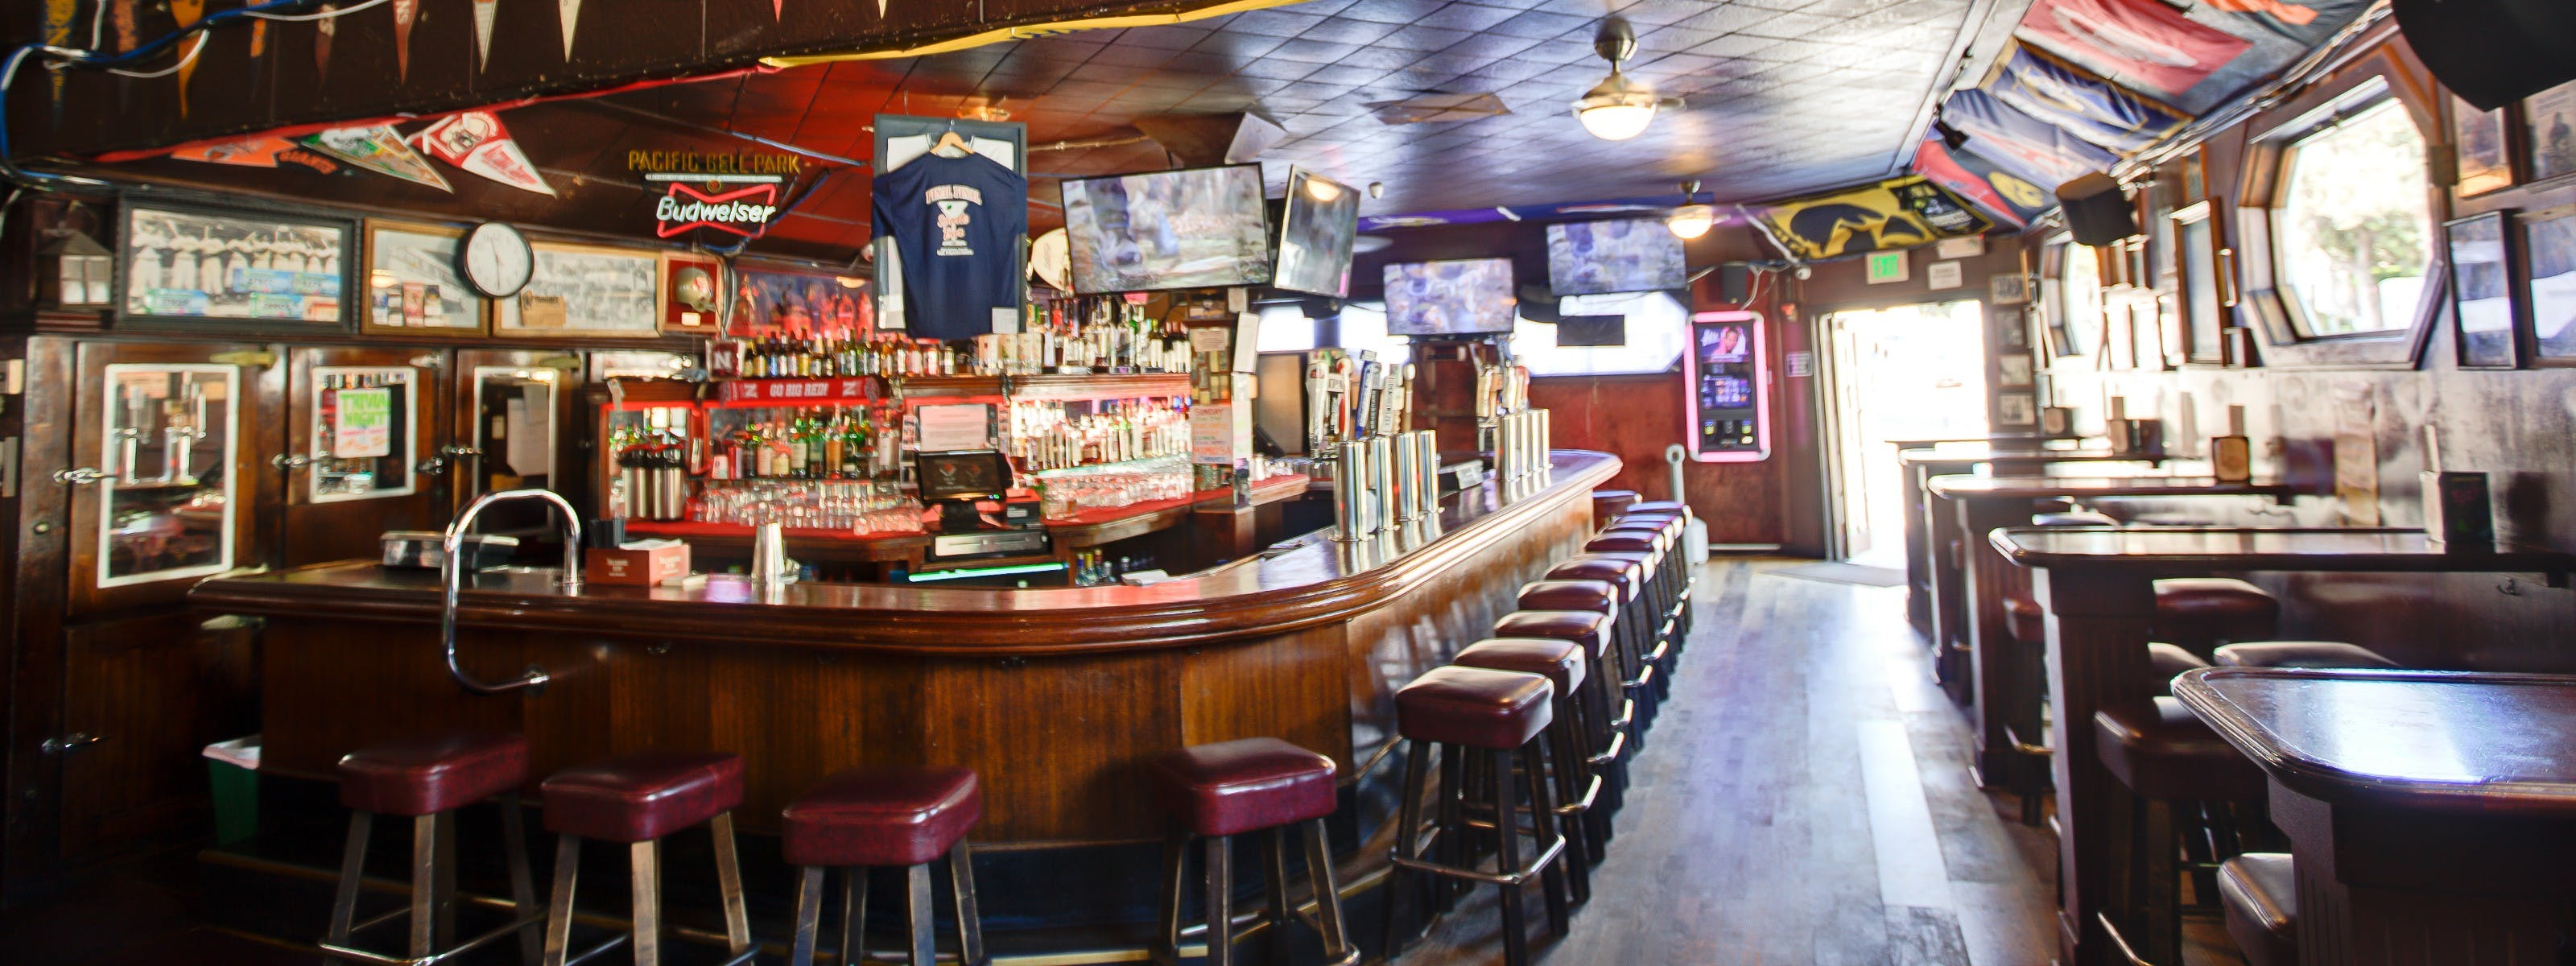 The Best Bars To Watch Sports In San Francisco - San ...